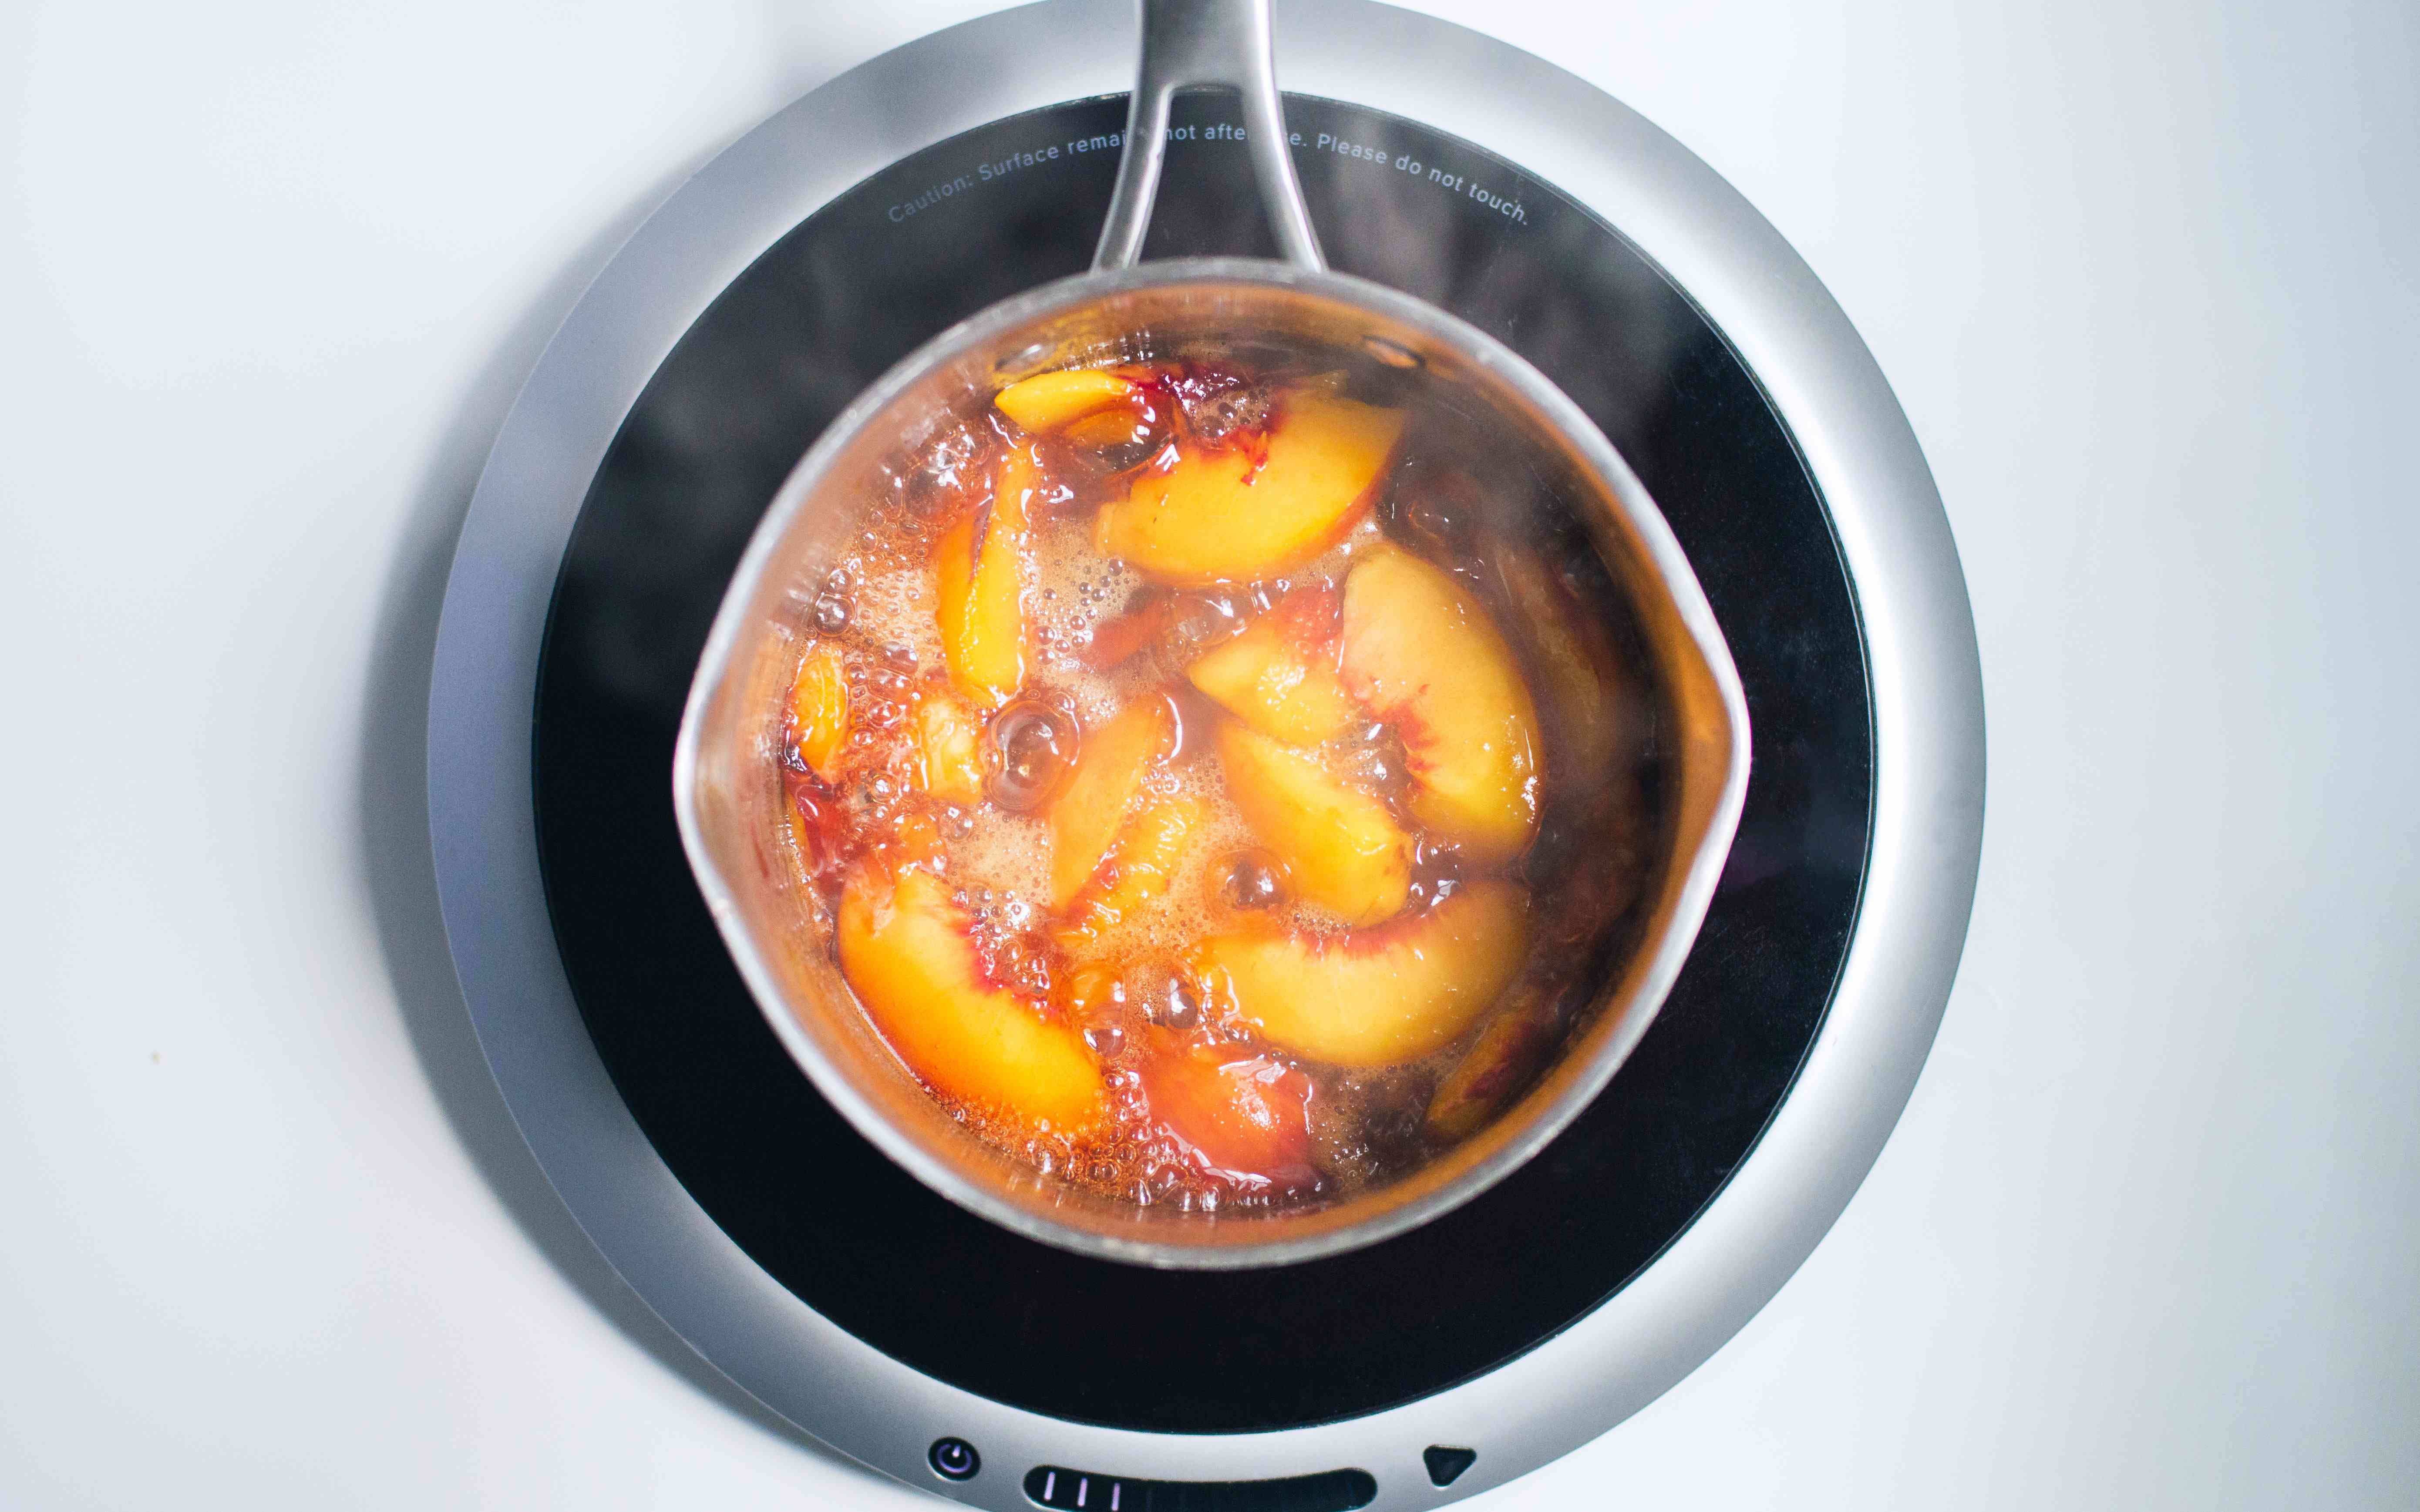 Combine peaches and brown sugar and cook